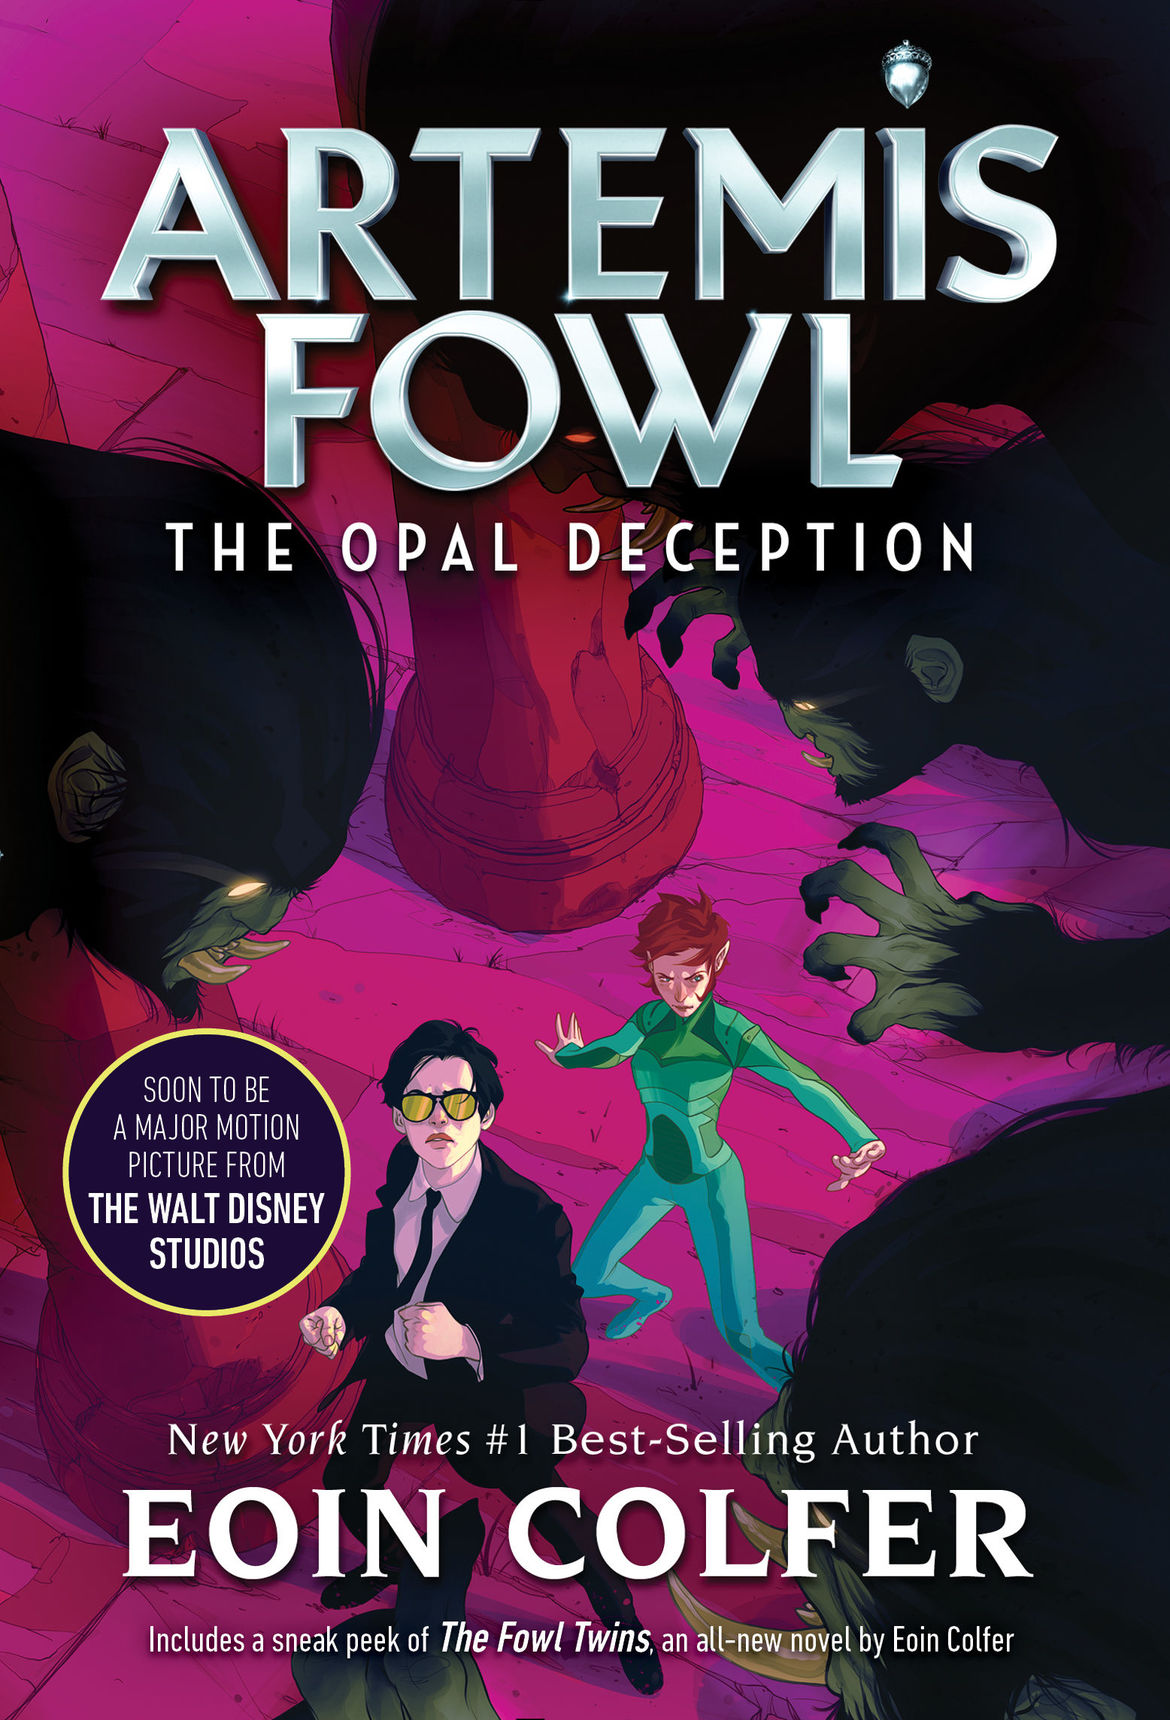 Artemis Fowl 4 The Opal Deception repackage